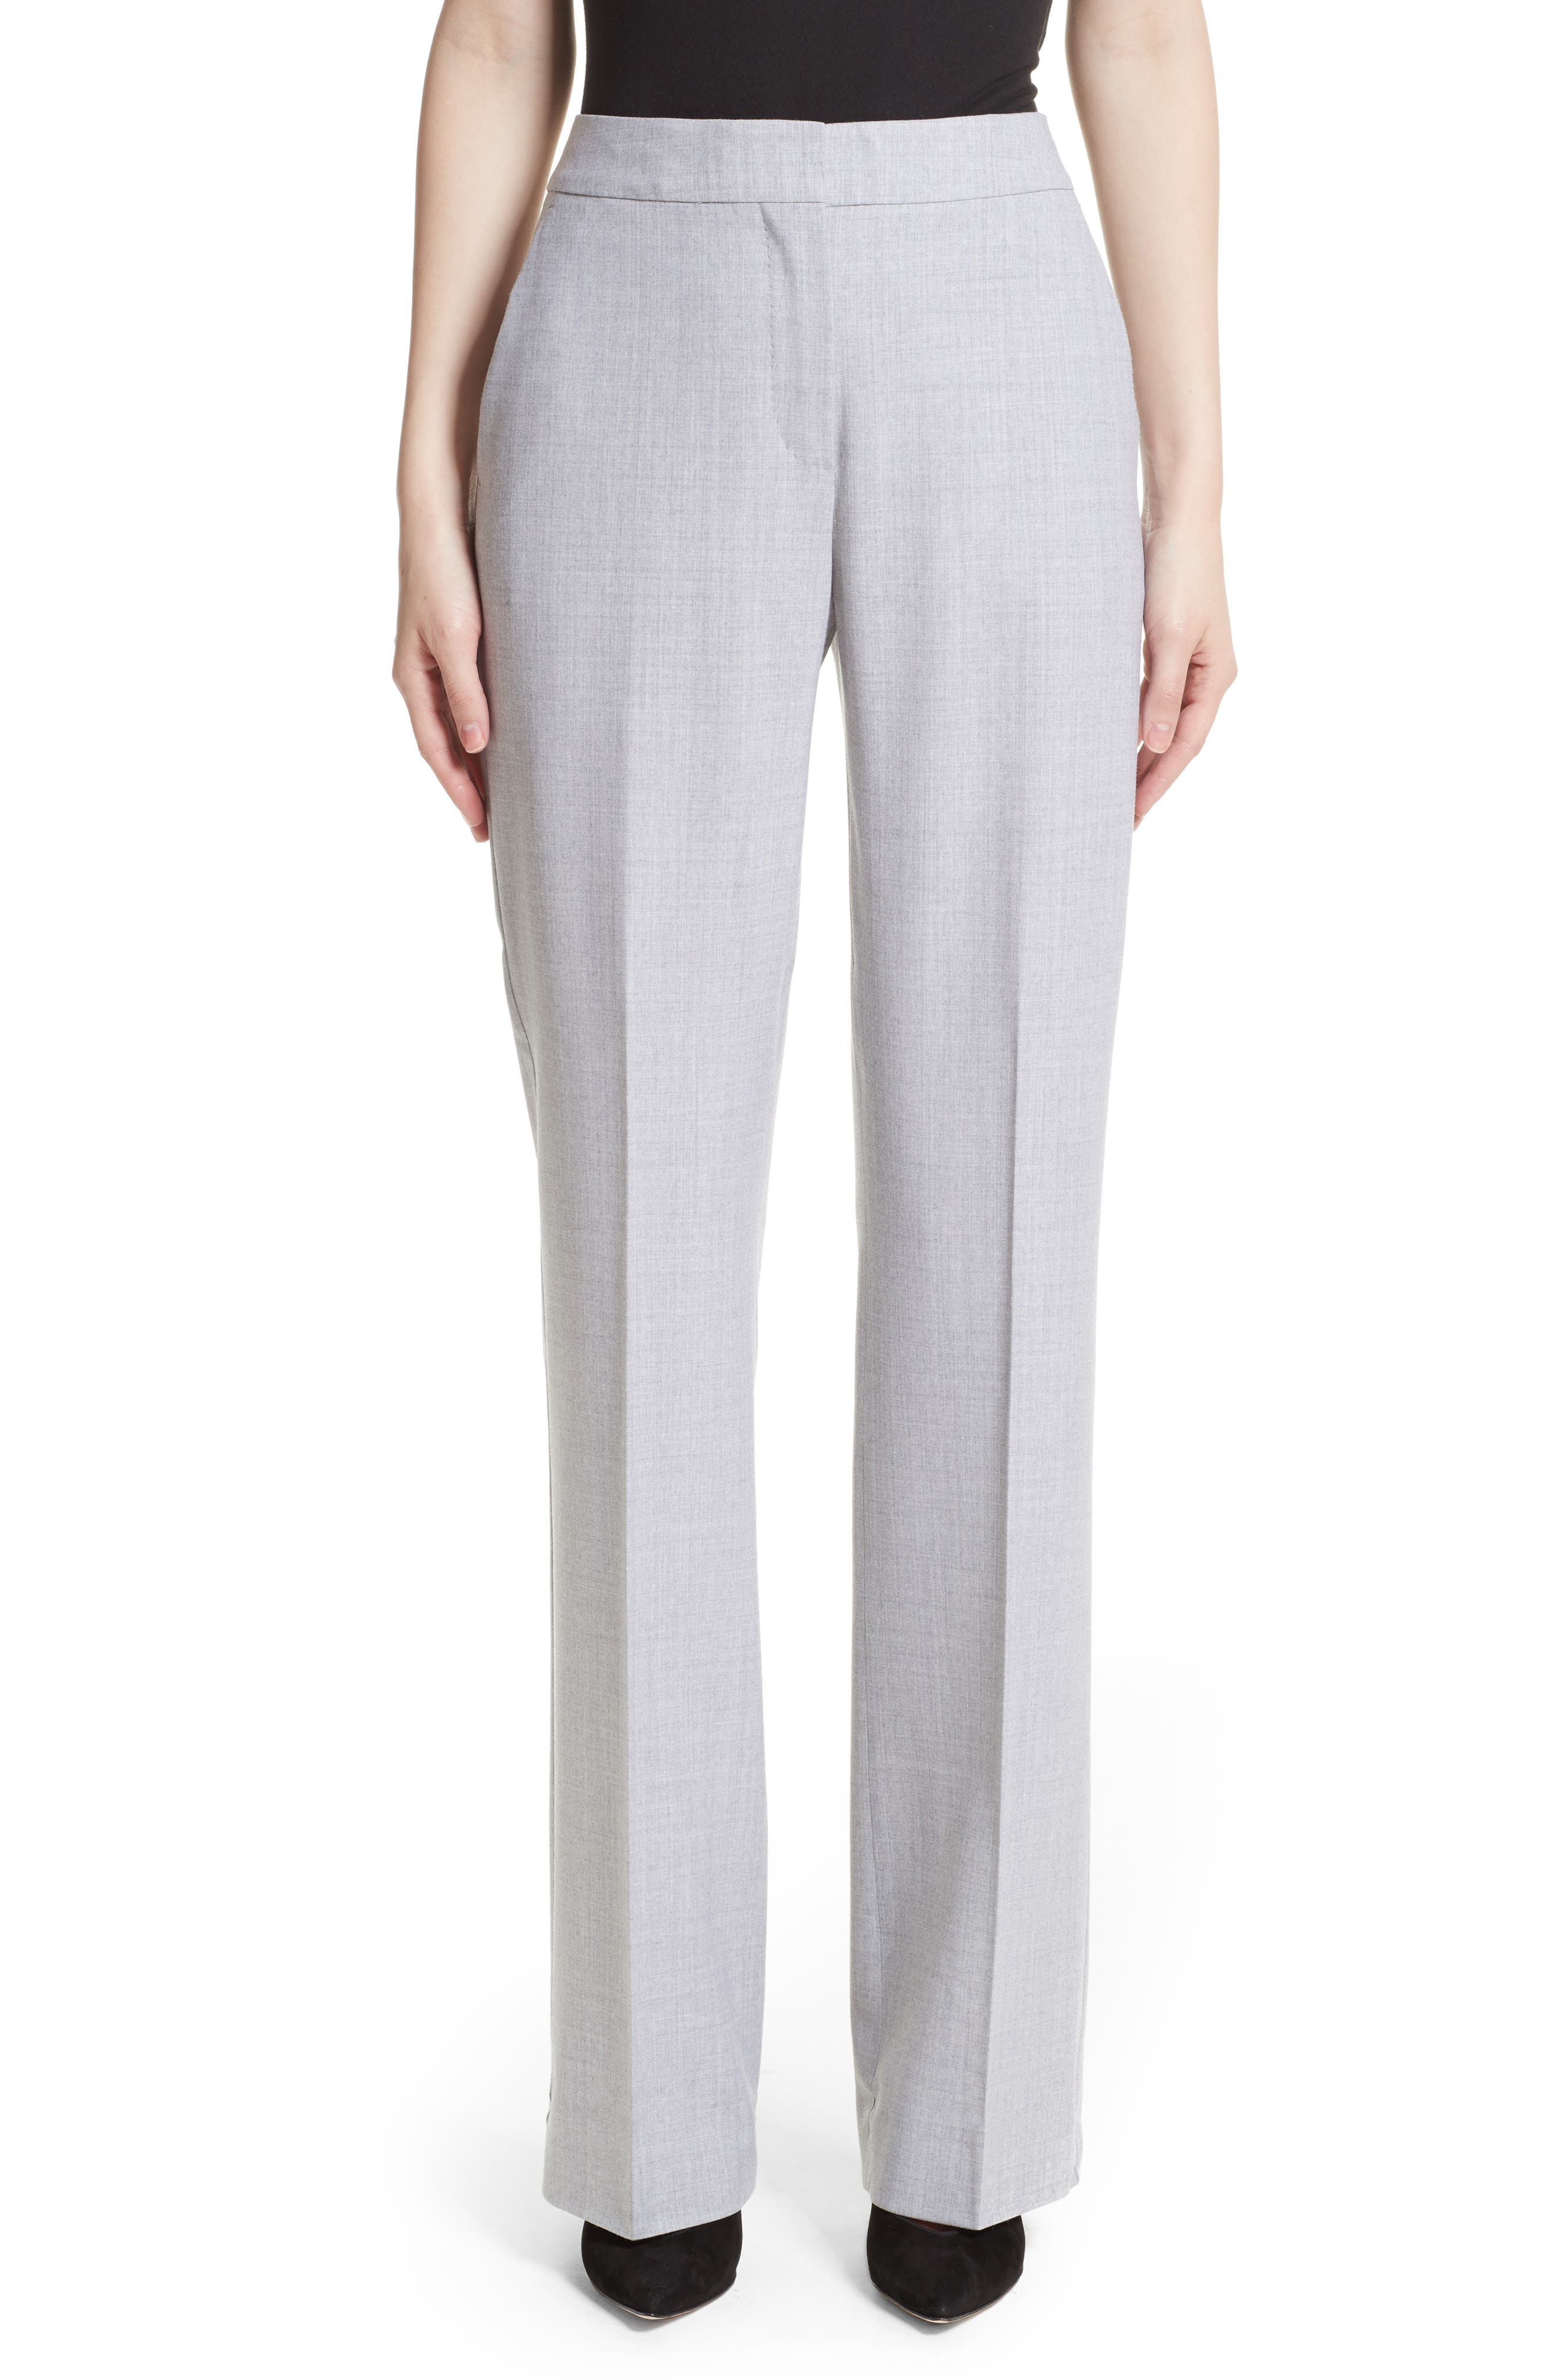 Alessia Stretch Wool Pants,                         Main,                         color, Light Grey